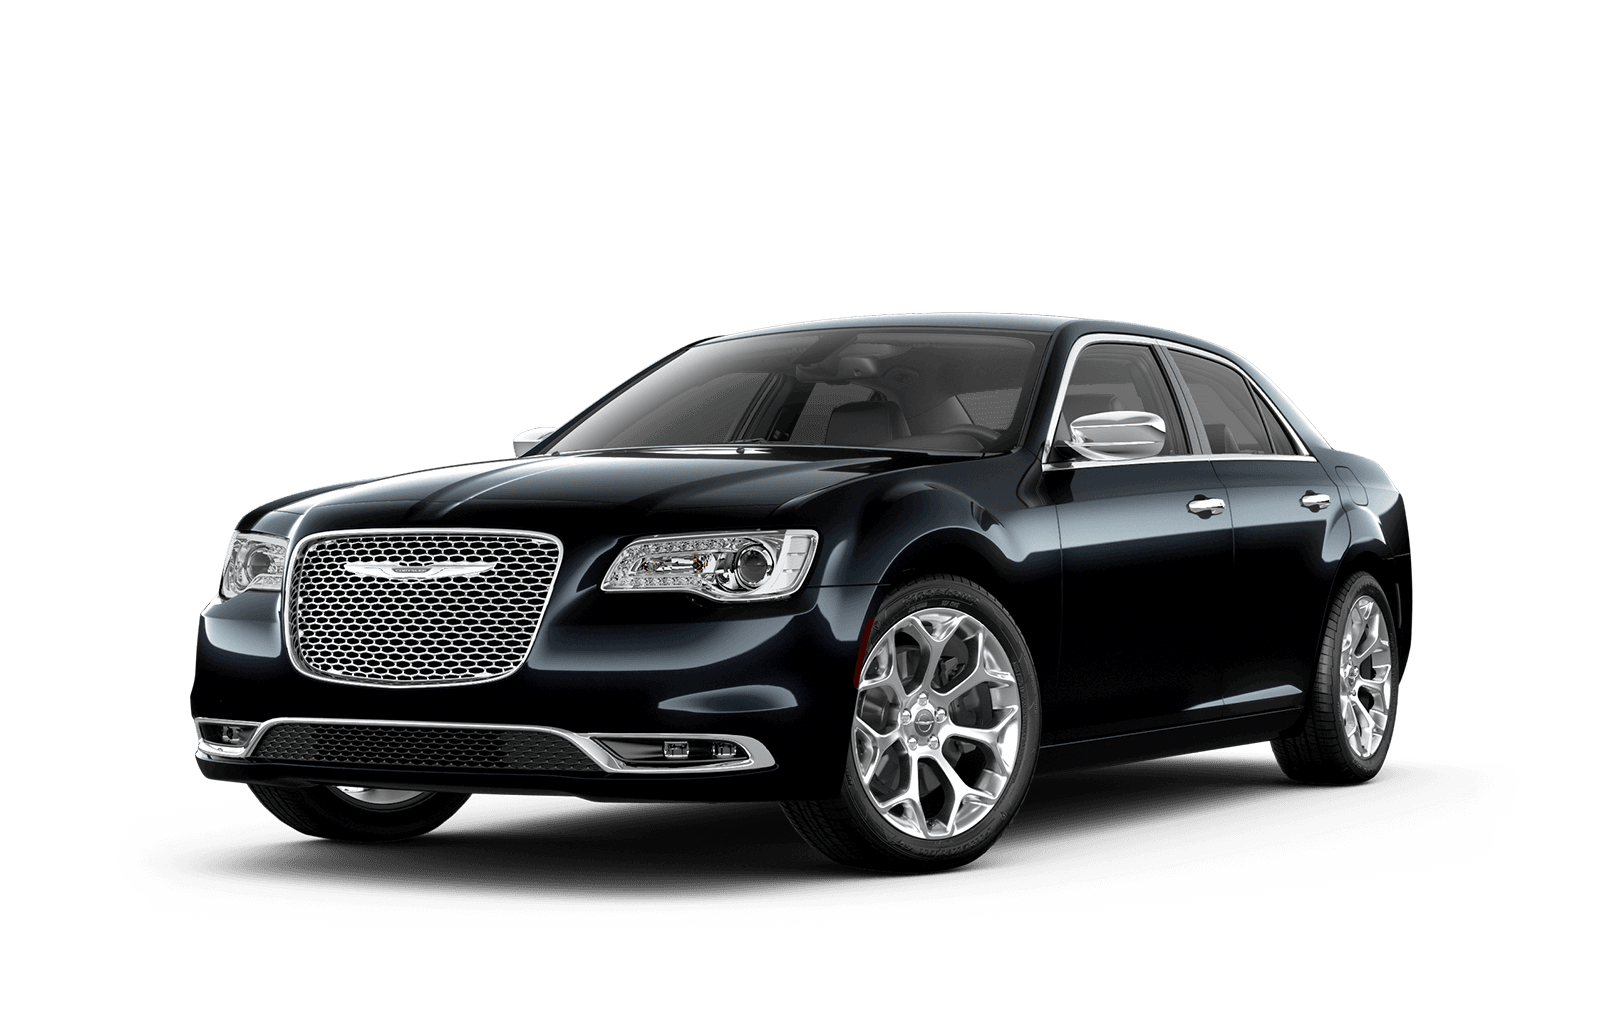 2019 Chrysler 300 Full View in Black with Wheels